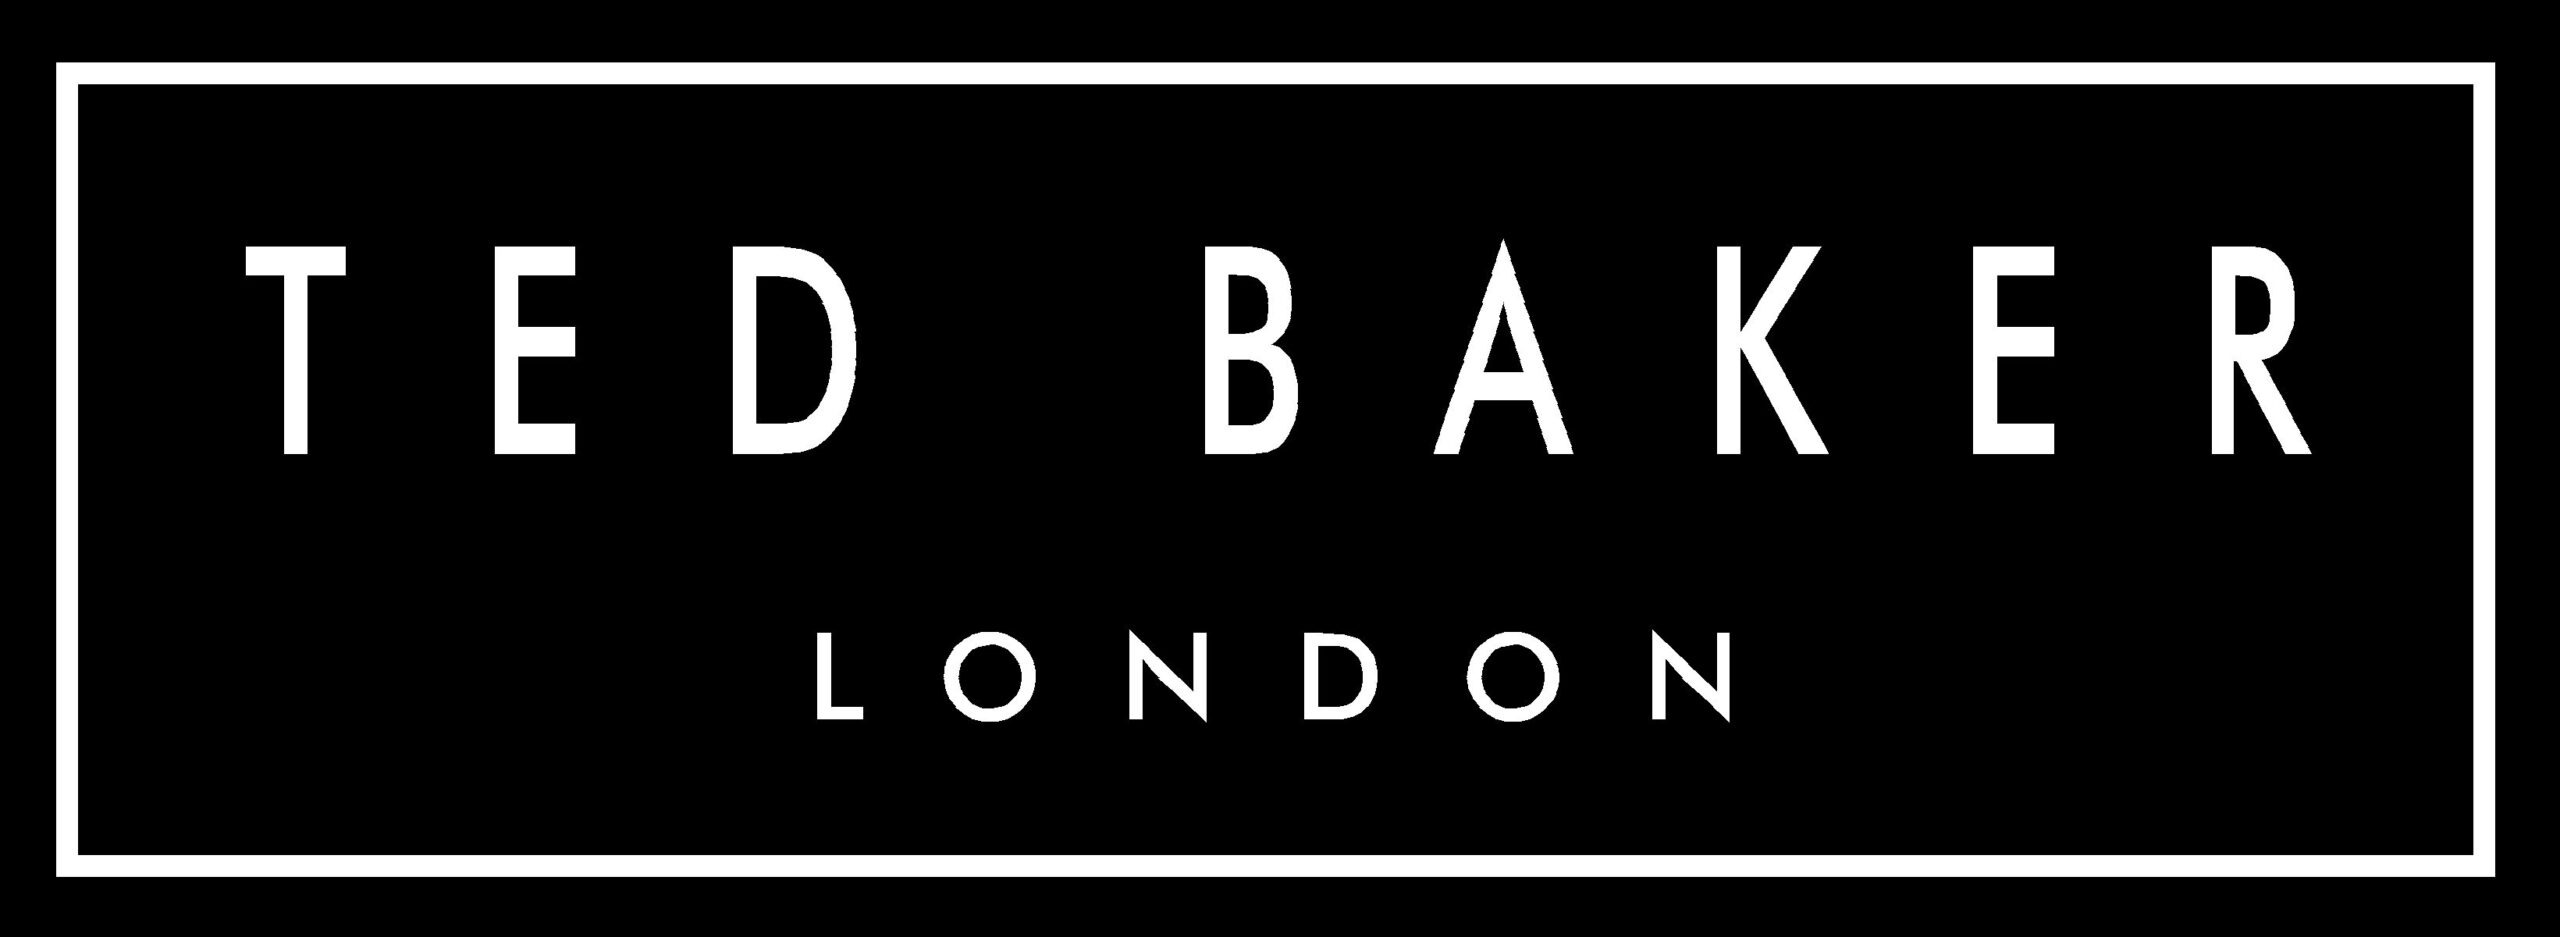 Ted Baker announced better sales than expected